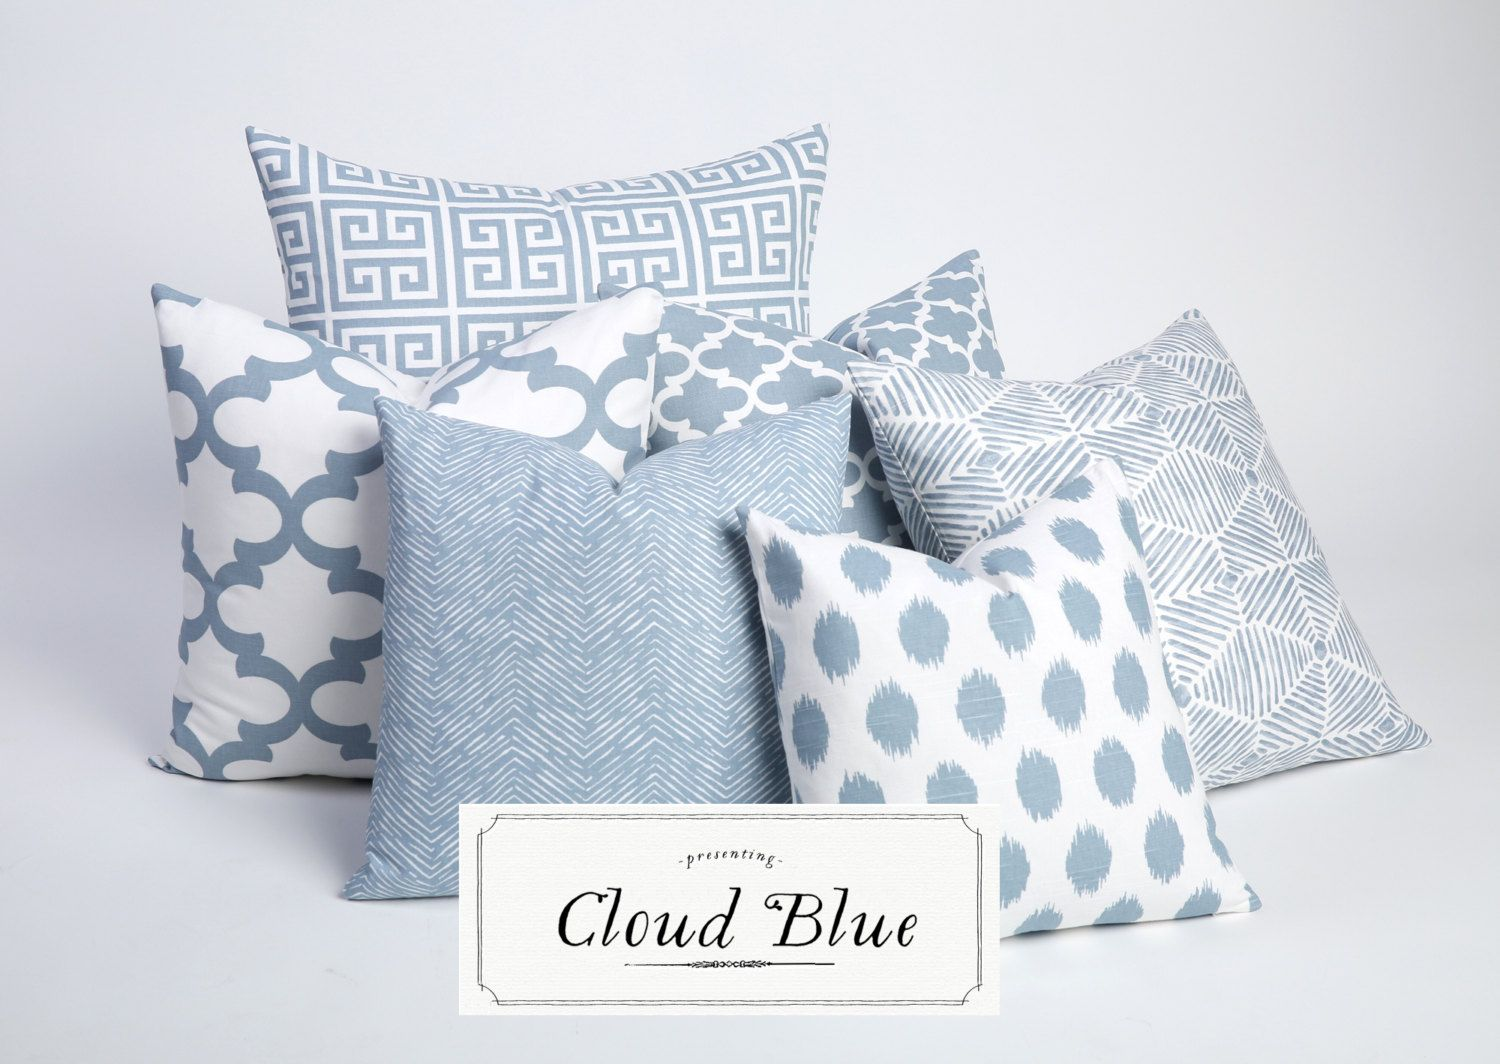 Cloud Blue Collection Decorative Throw Pillow by Pillomatic